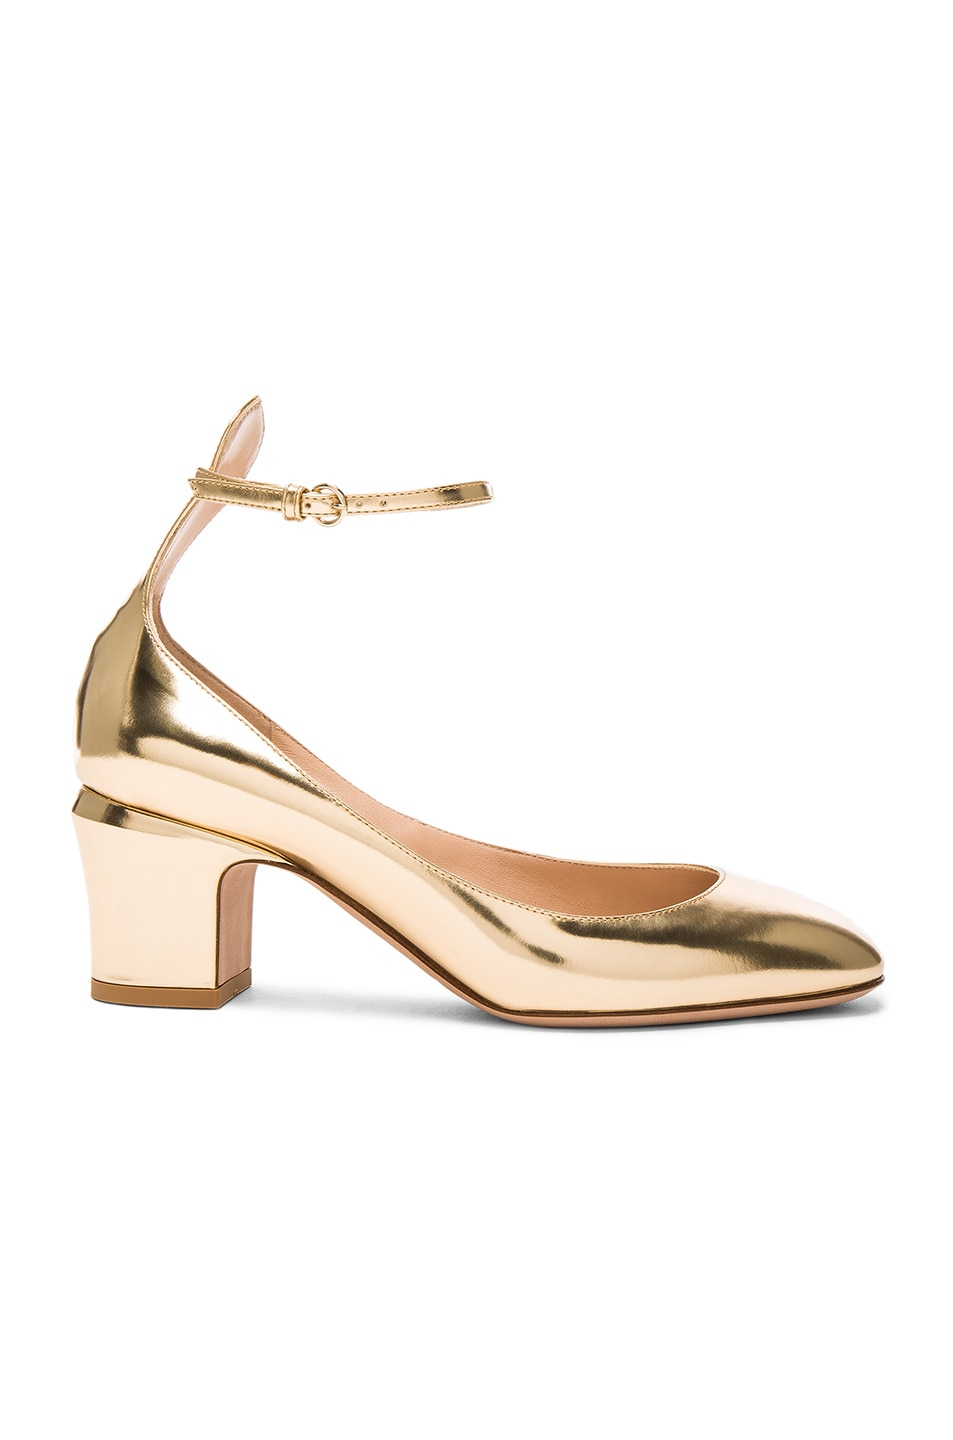 Image 1 of Valentino Leather Tan-Go Pumps in Gold Vintage